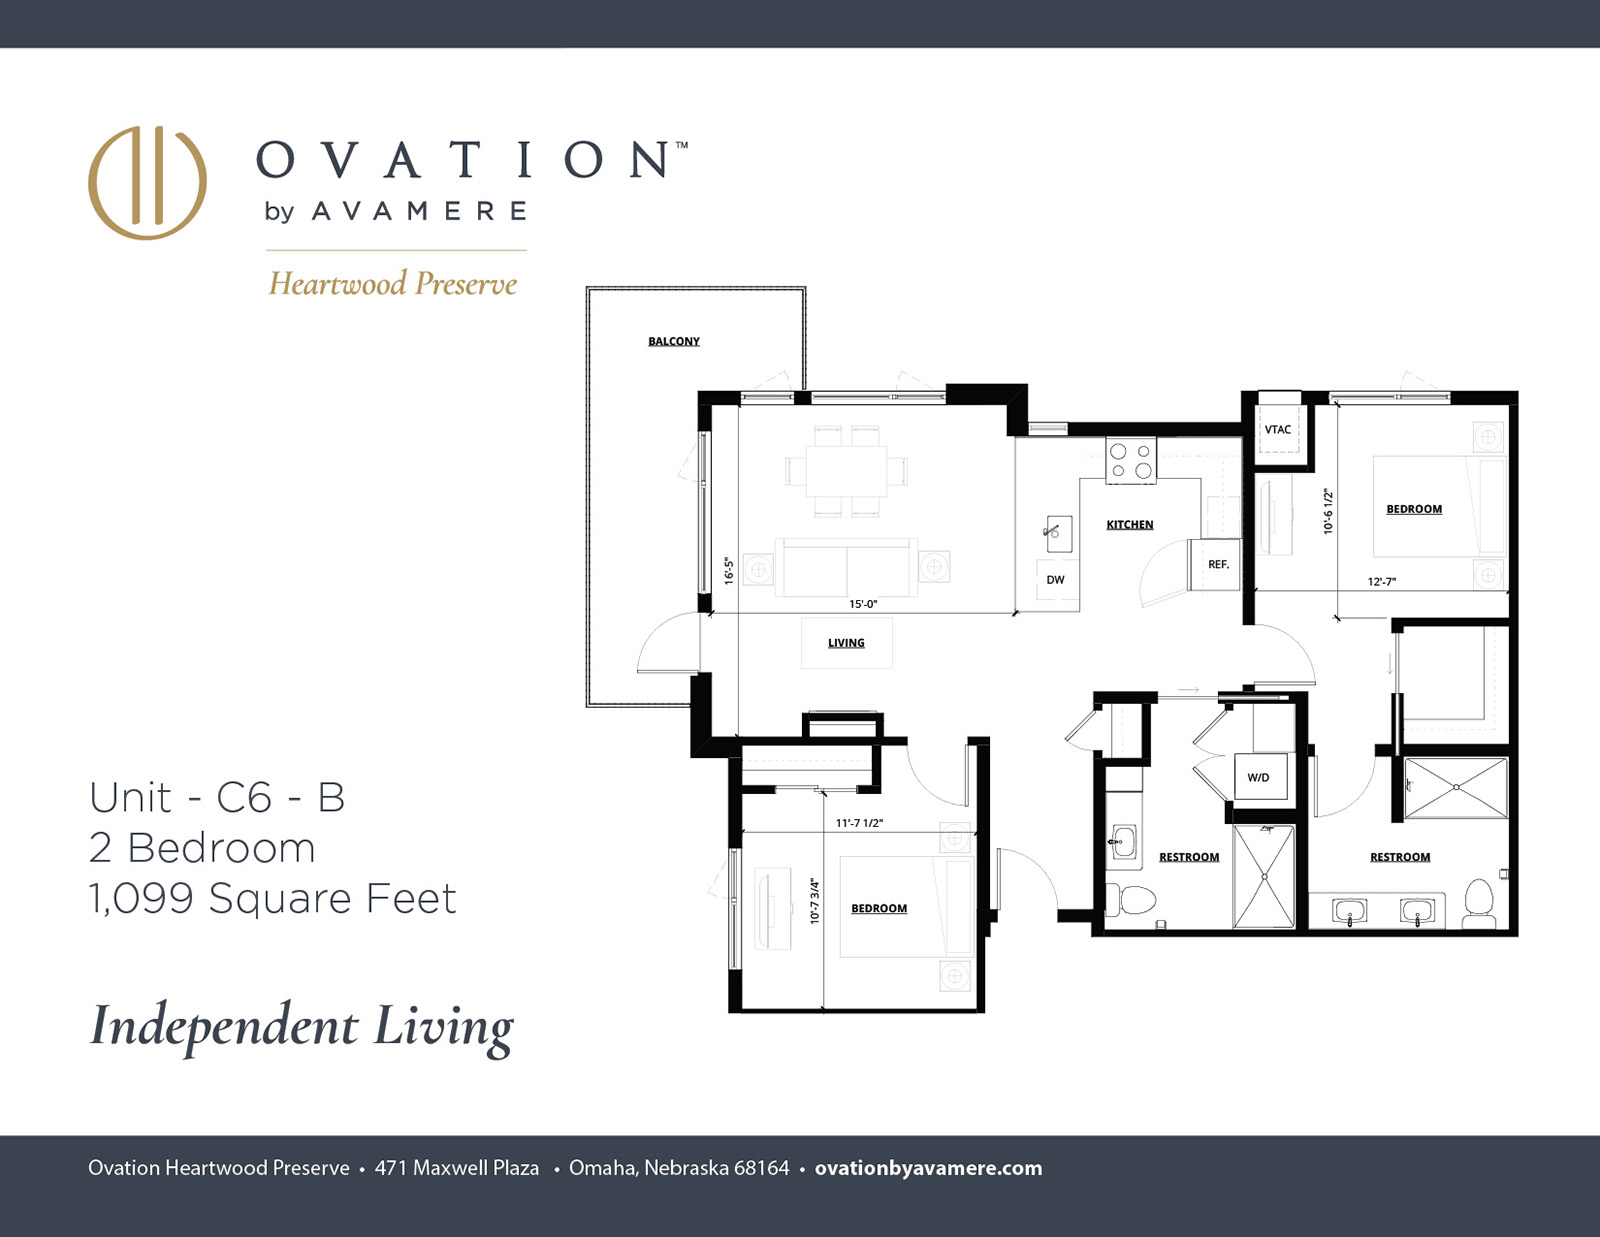 Independent Living | Room C6 - B